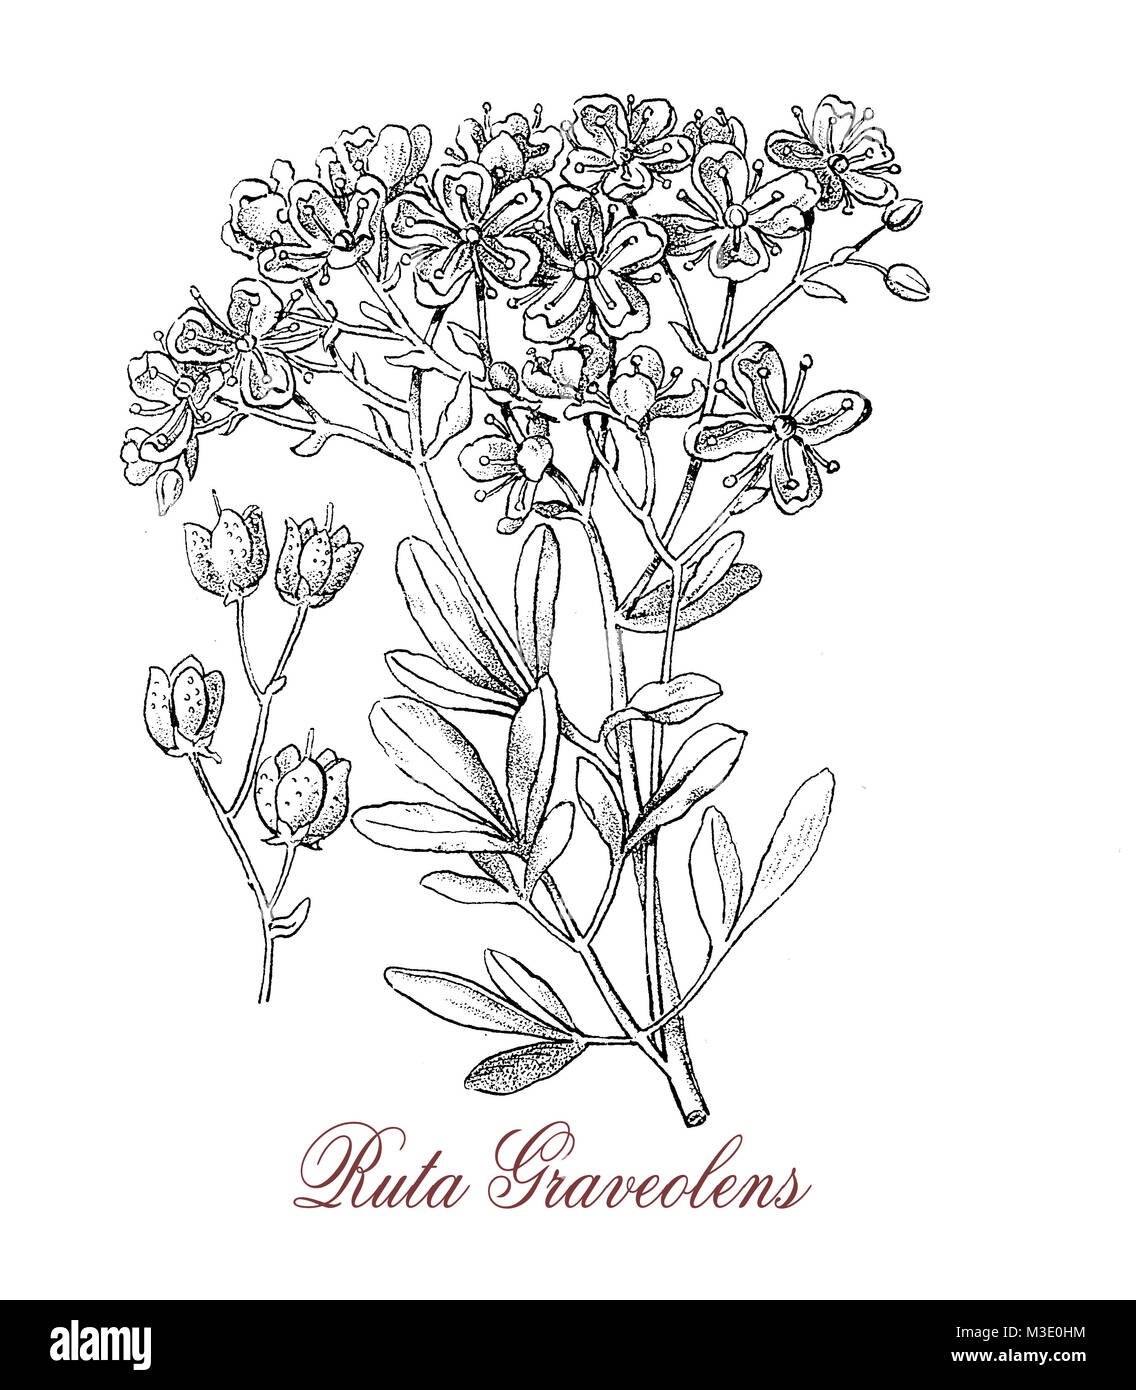 vintage engraving of ruta graveolens, medicinal herb from Balkan peninsula used in East Italy to flavor grappa. - Stock Image